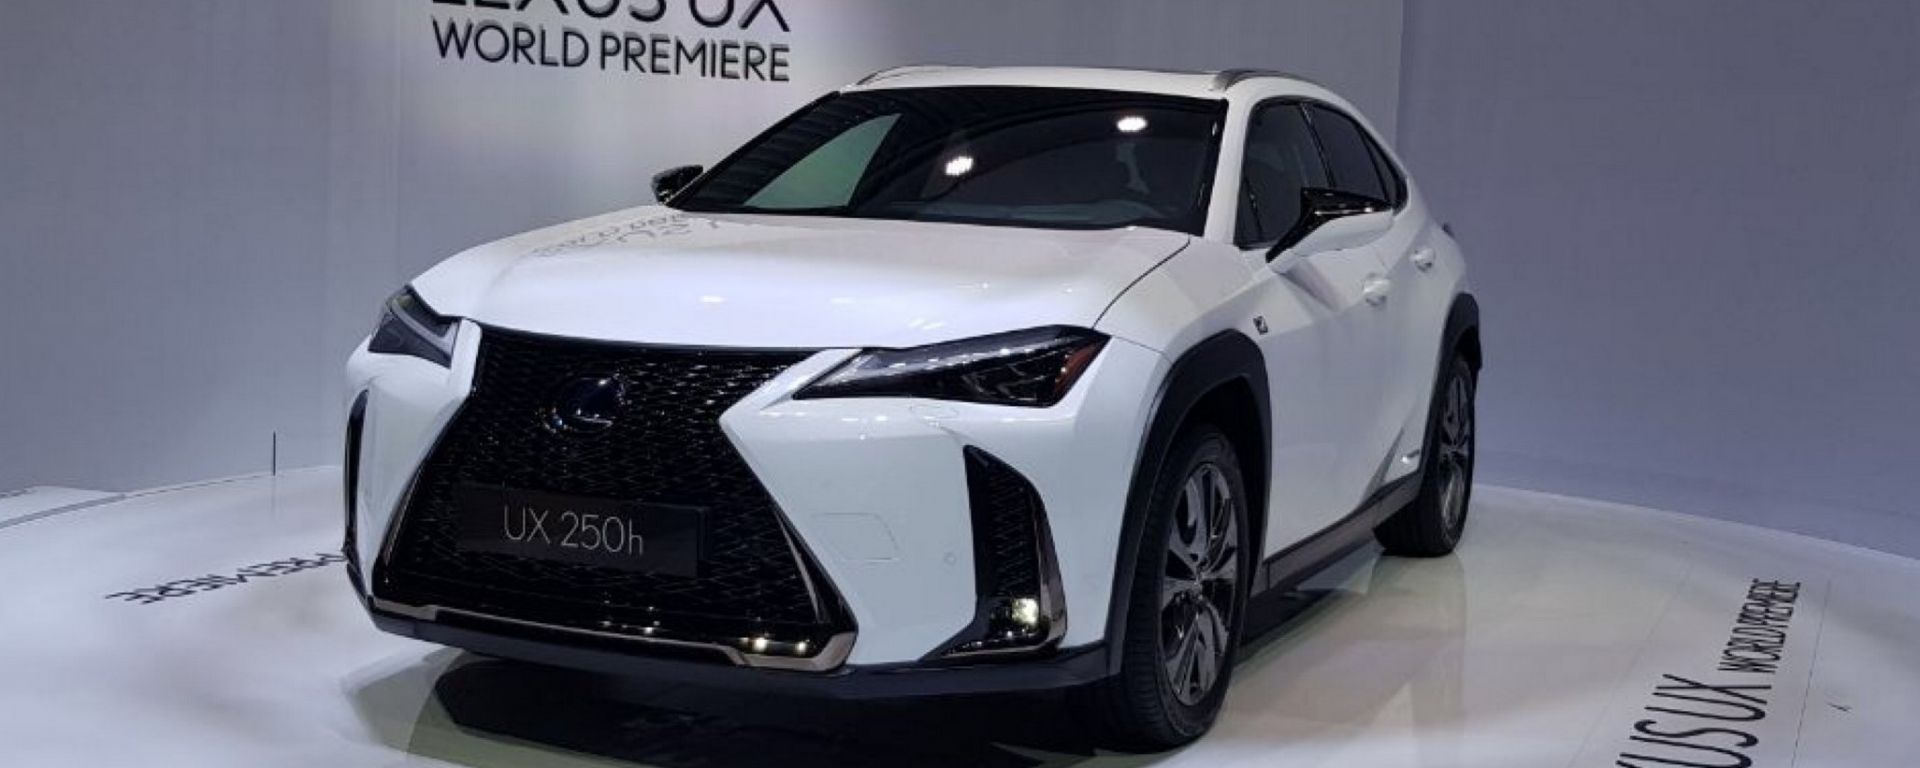 Lexus UX: in video dal Salone di Ginevra 2018